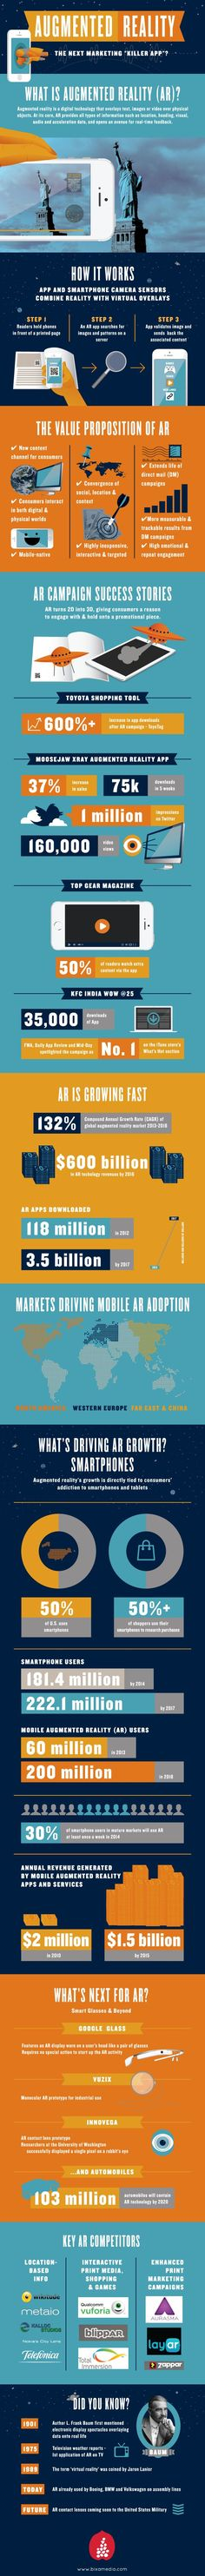 "Infographic: Augmented Reality - The Next Marketing ""Killer App""?"